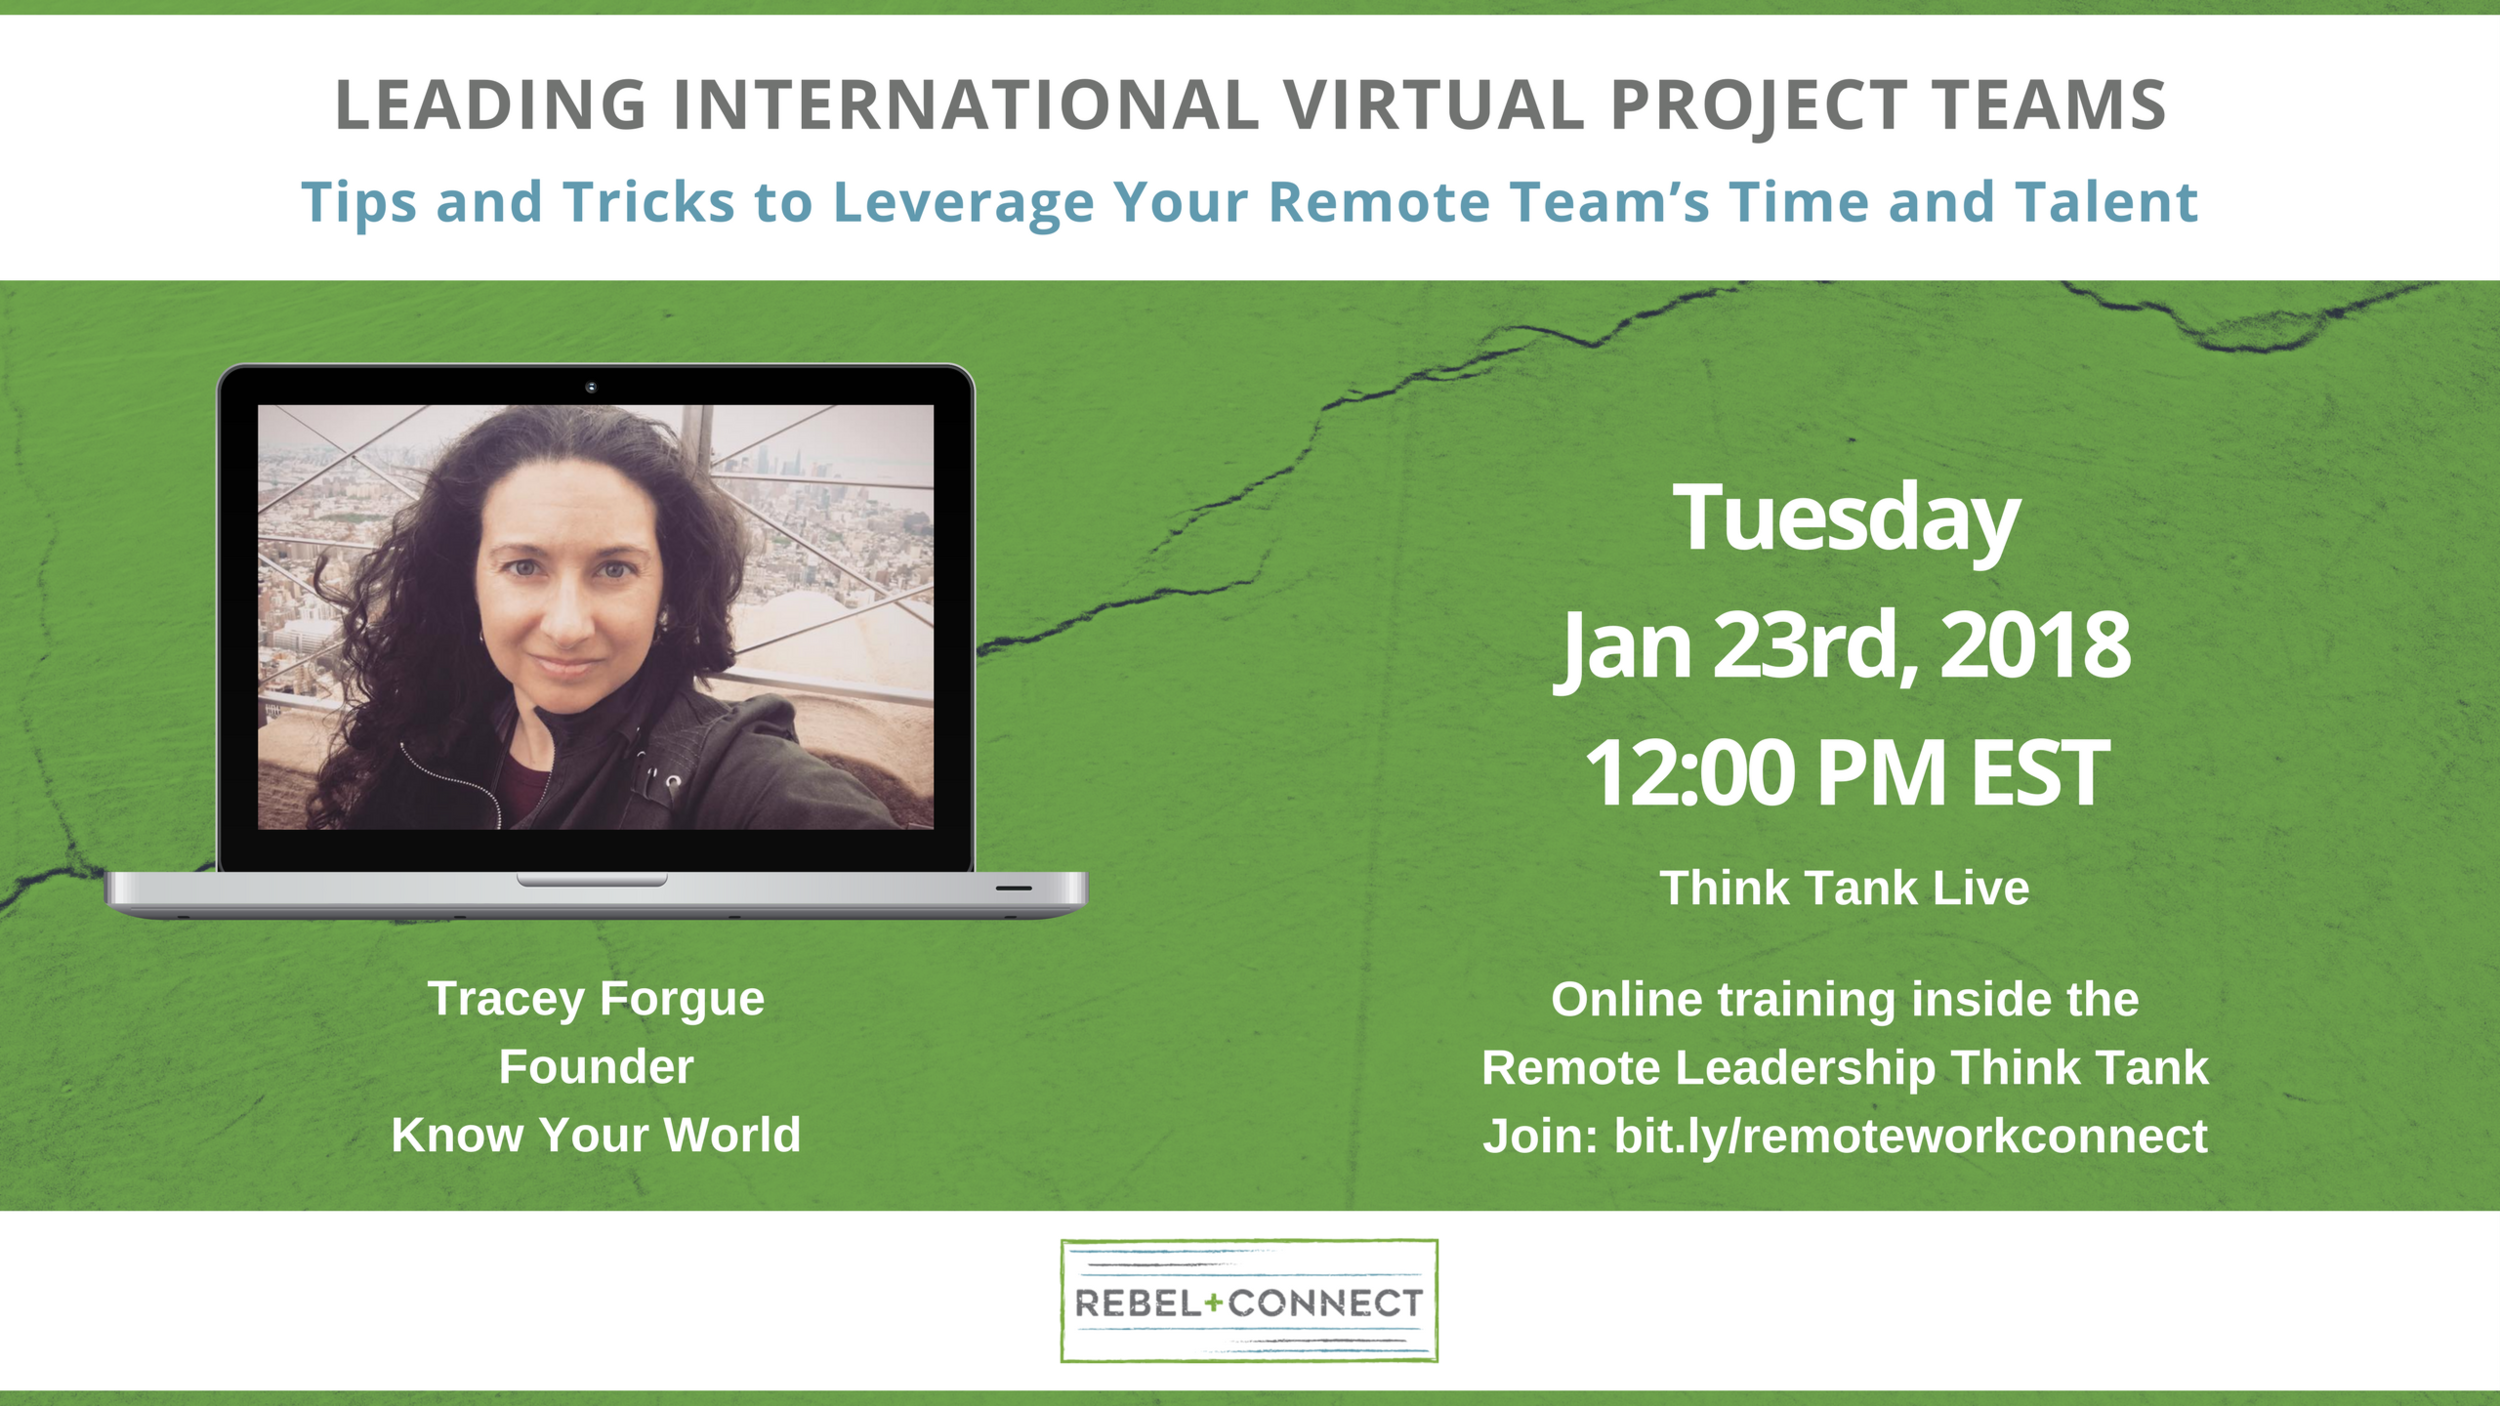 Leading International Virtual Project Teams_ Tips and Tricks to Leverage Your Remote Team's Time and Talent-1-1.png